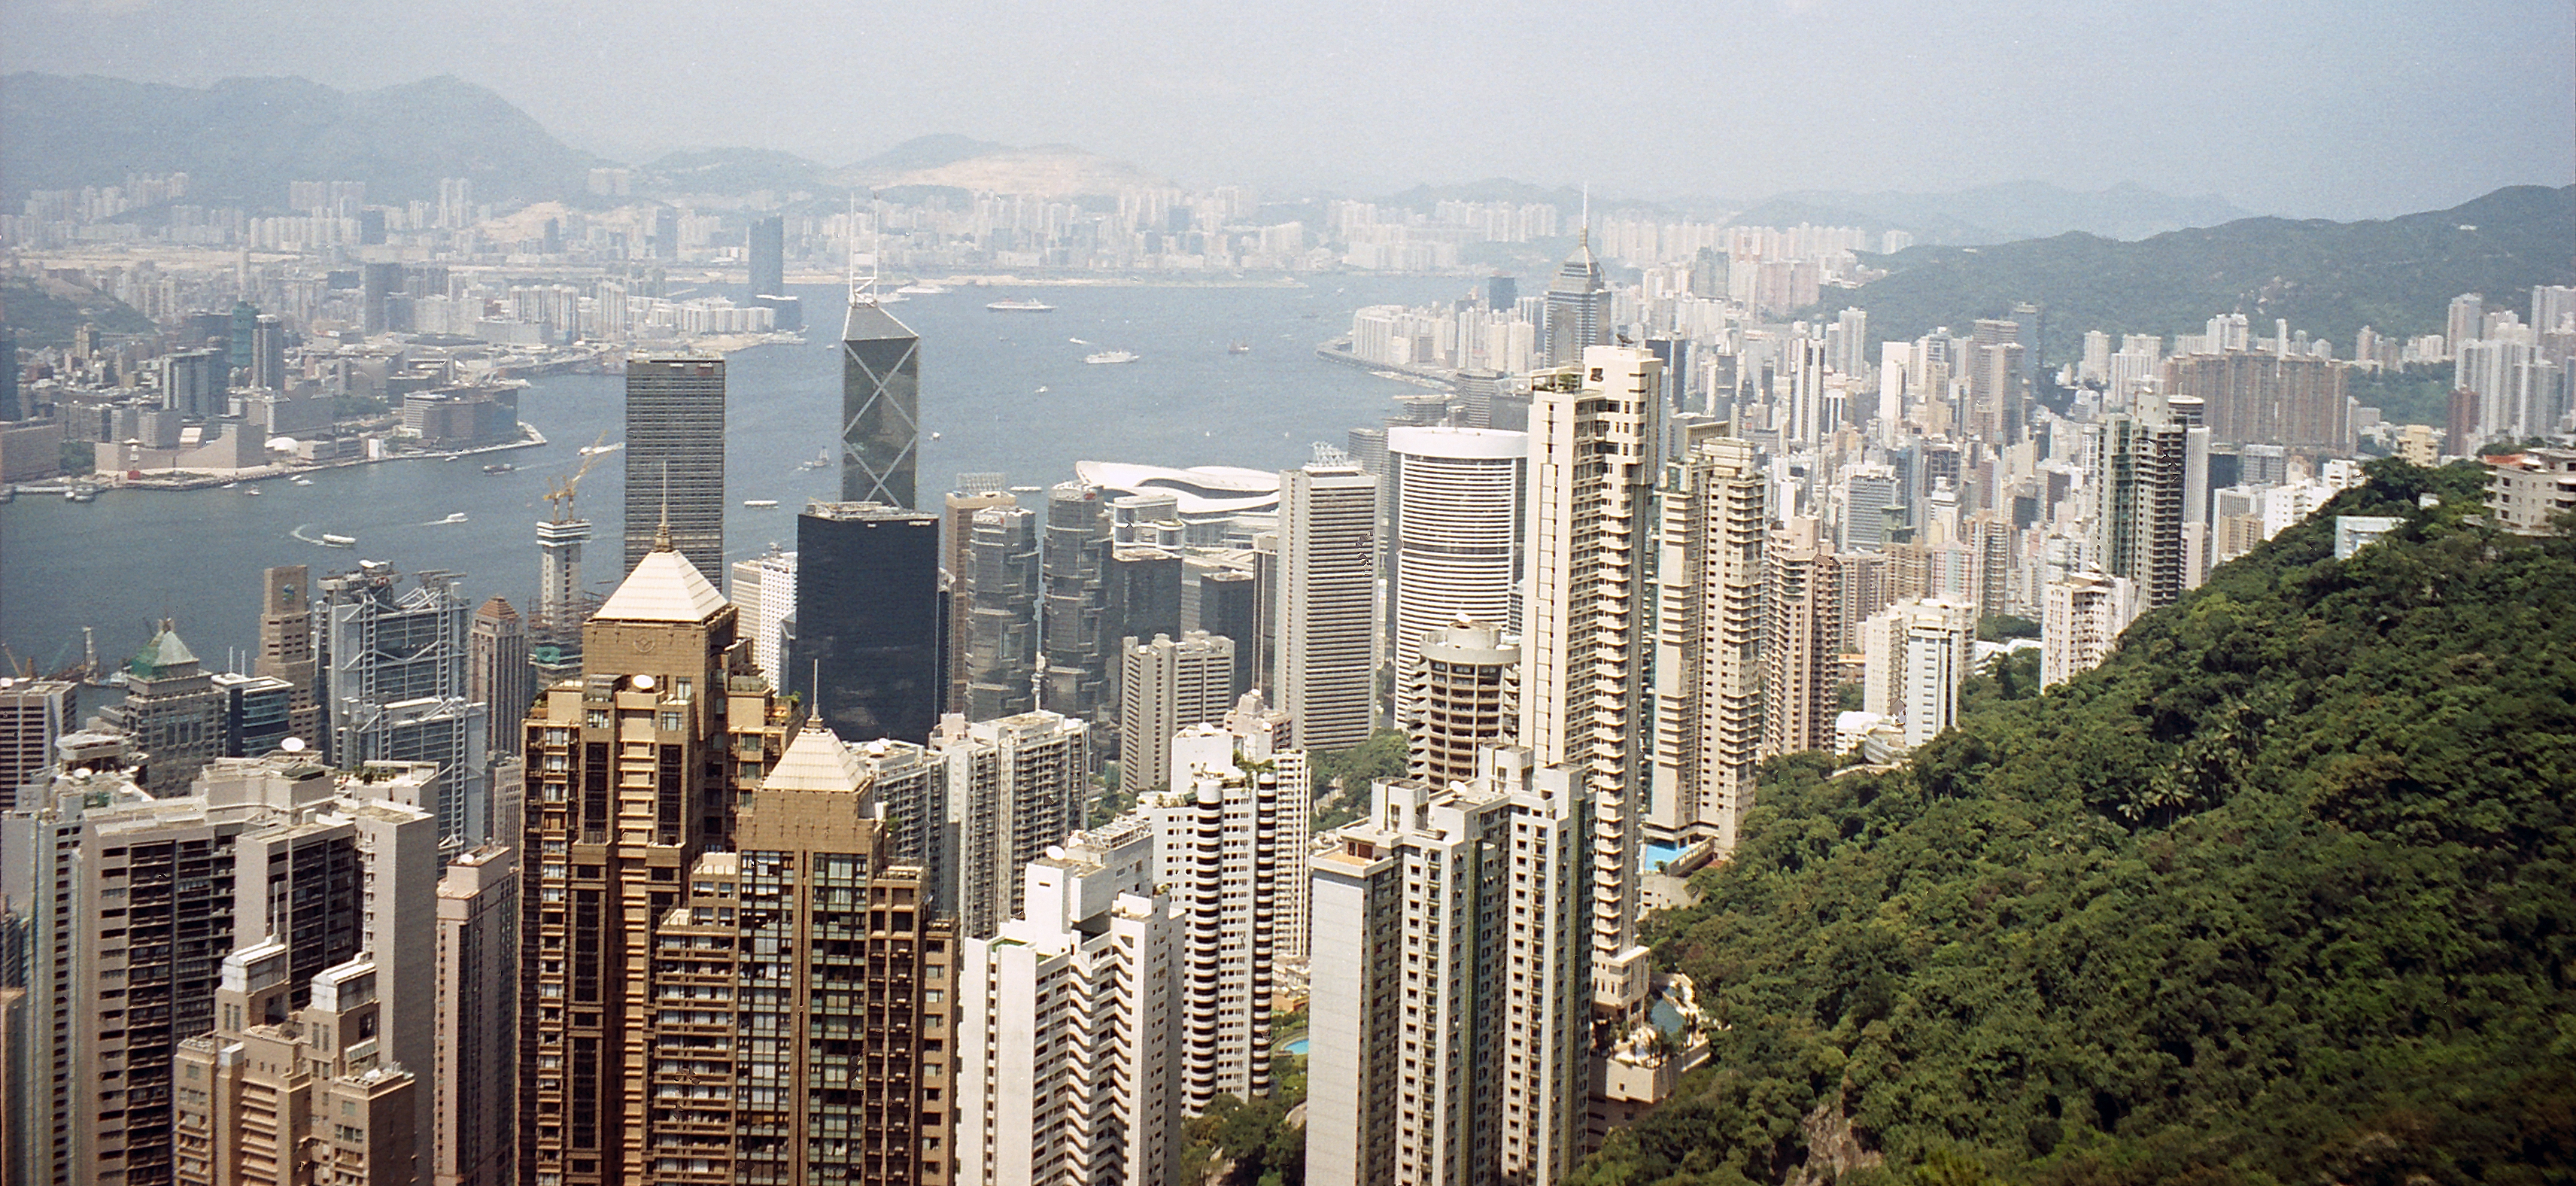 skyscrapers, Hong Kong China 1.jpg